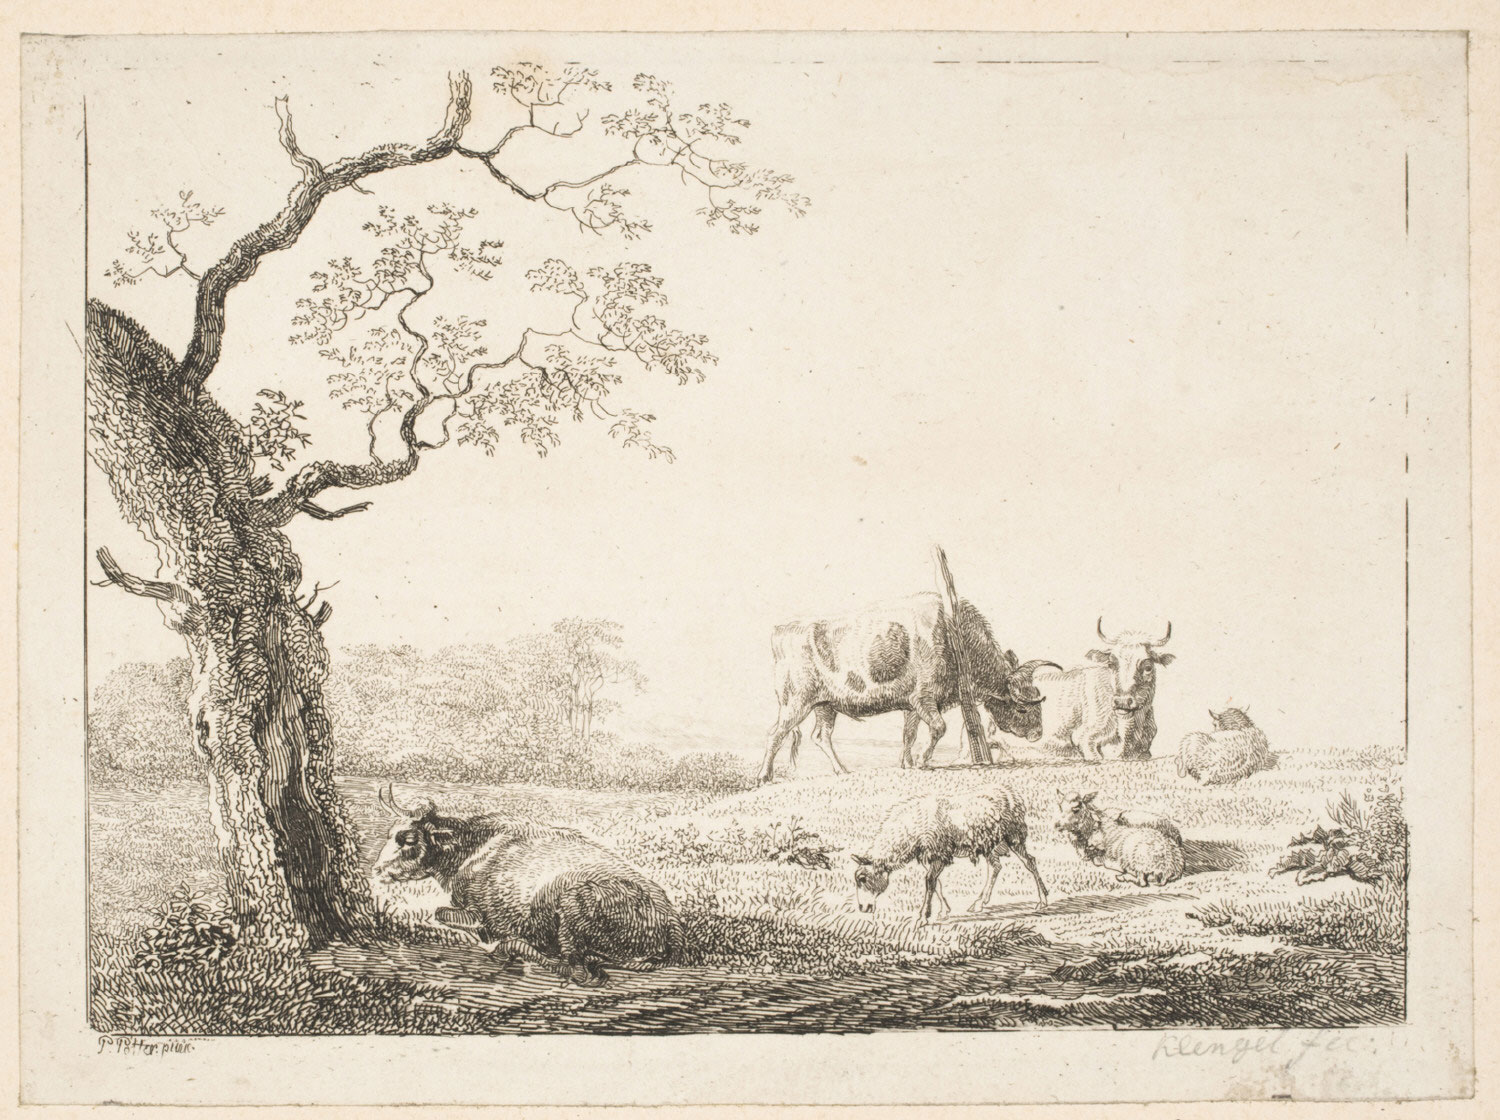 Broad Landscape with Steer, Cows, and Sheep